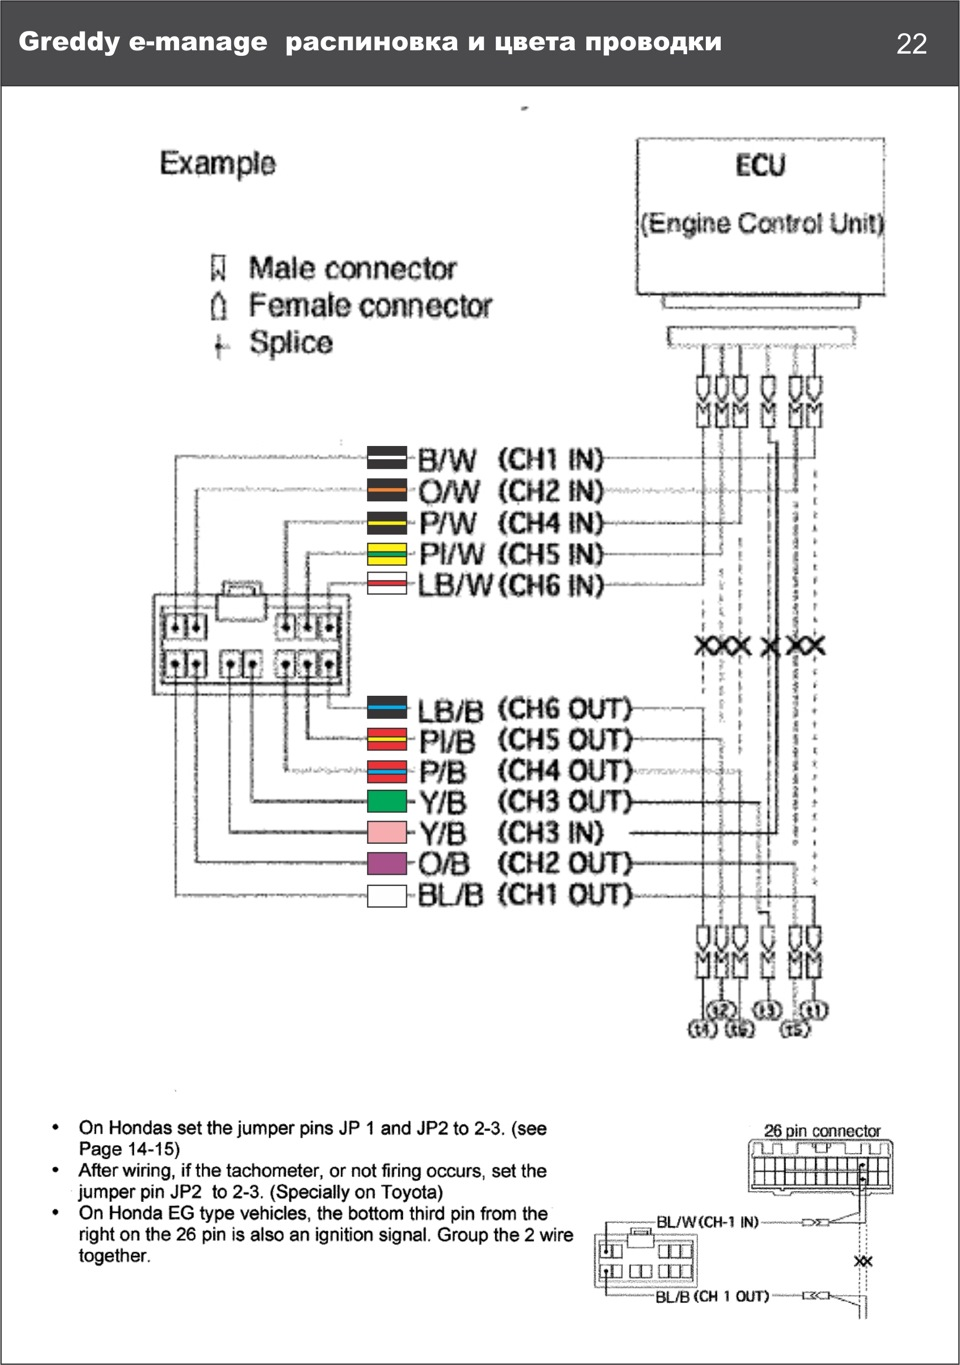 Emanage Blue Wiring Diagram - Cat5 Wiring Diagram